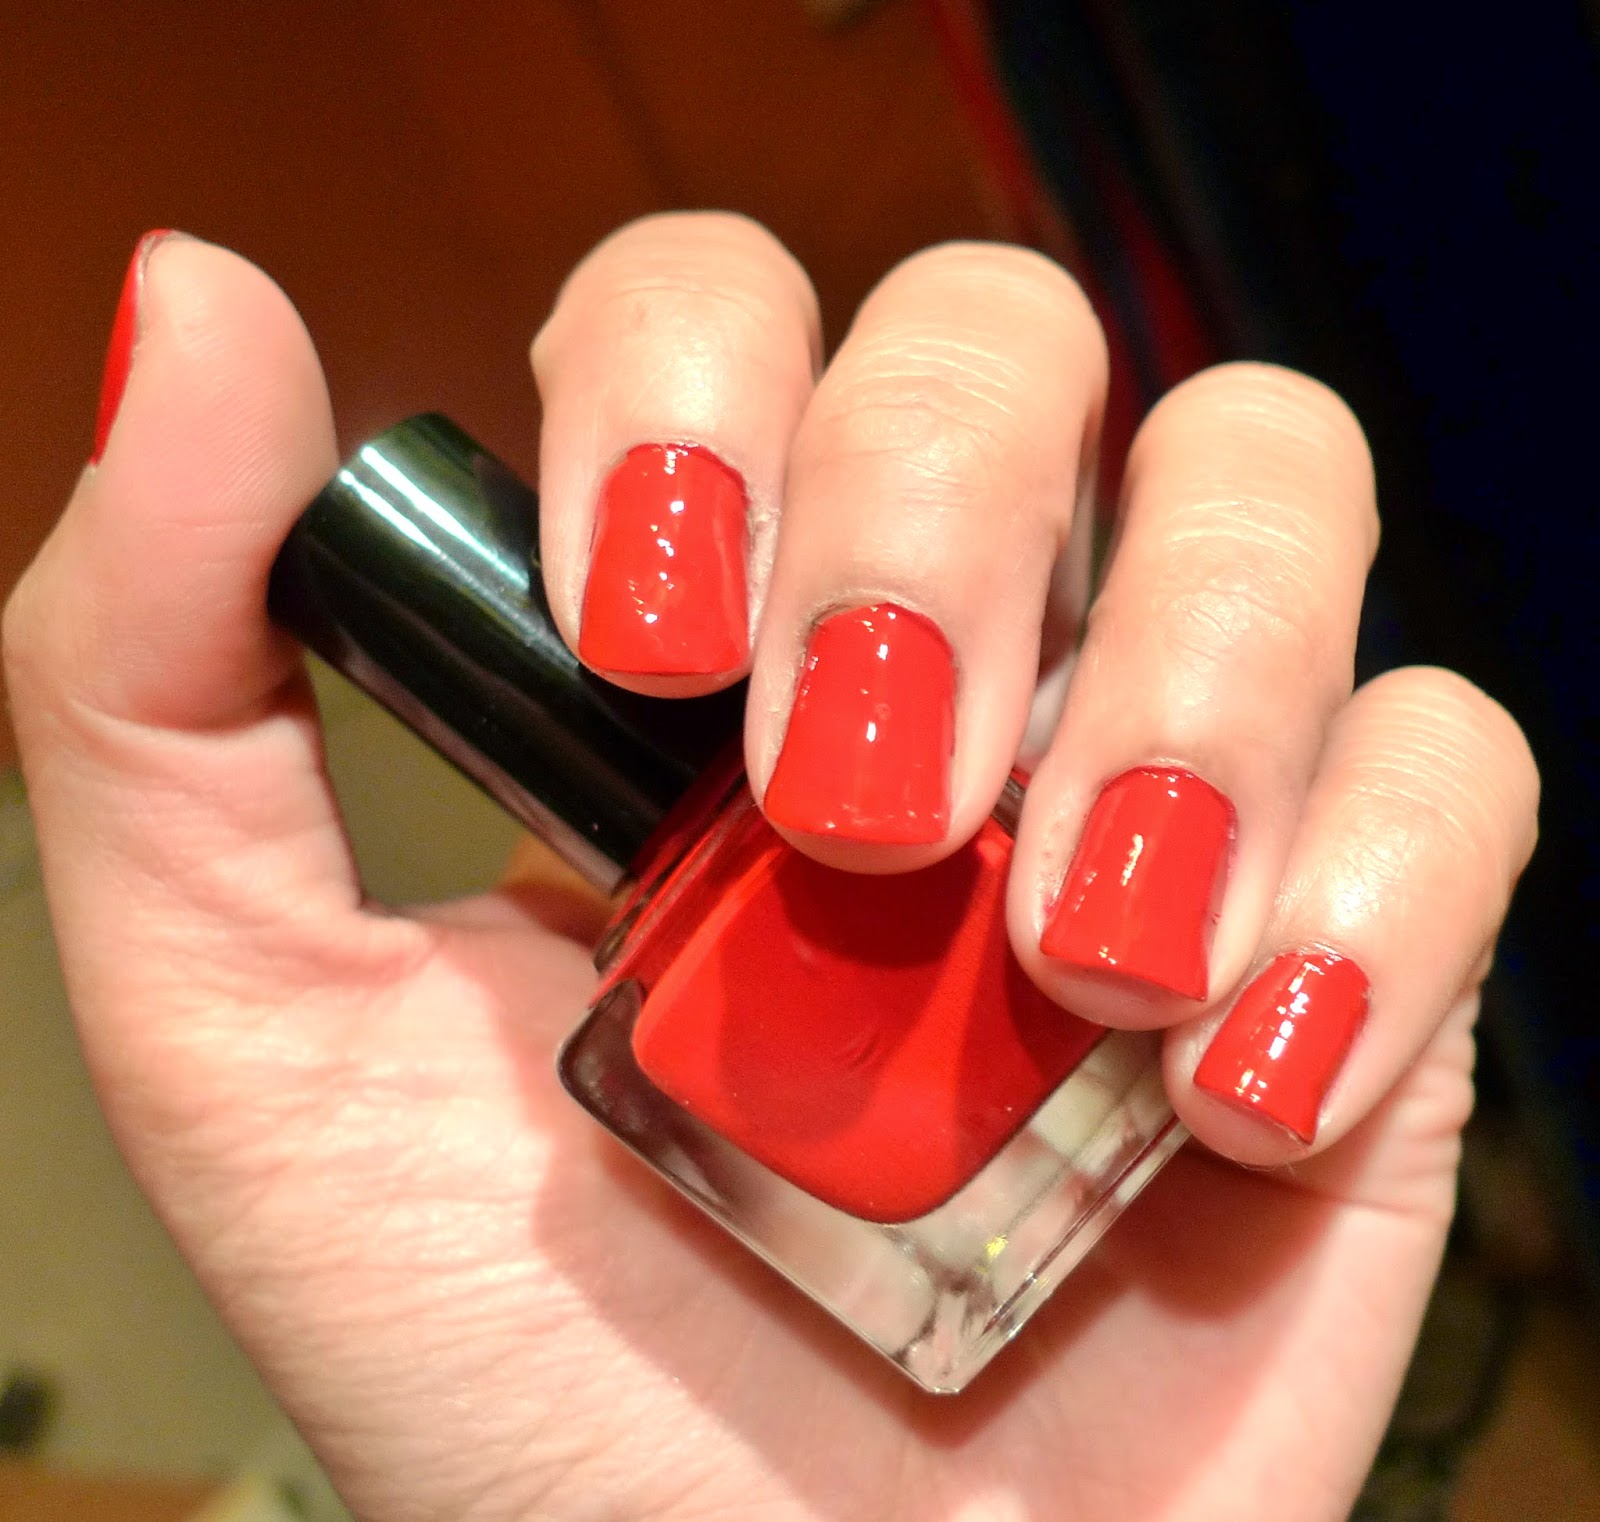 Anny Nail Polish and Base Coat Review + Swatches | The Beauty Junkee